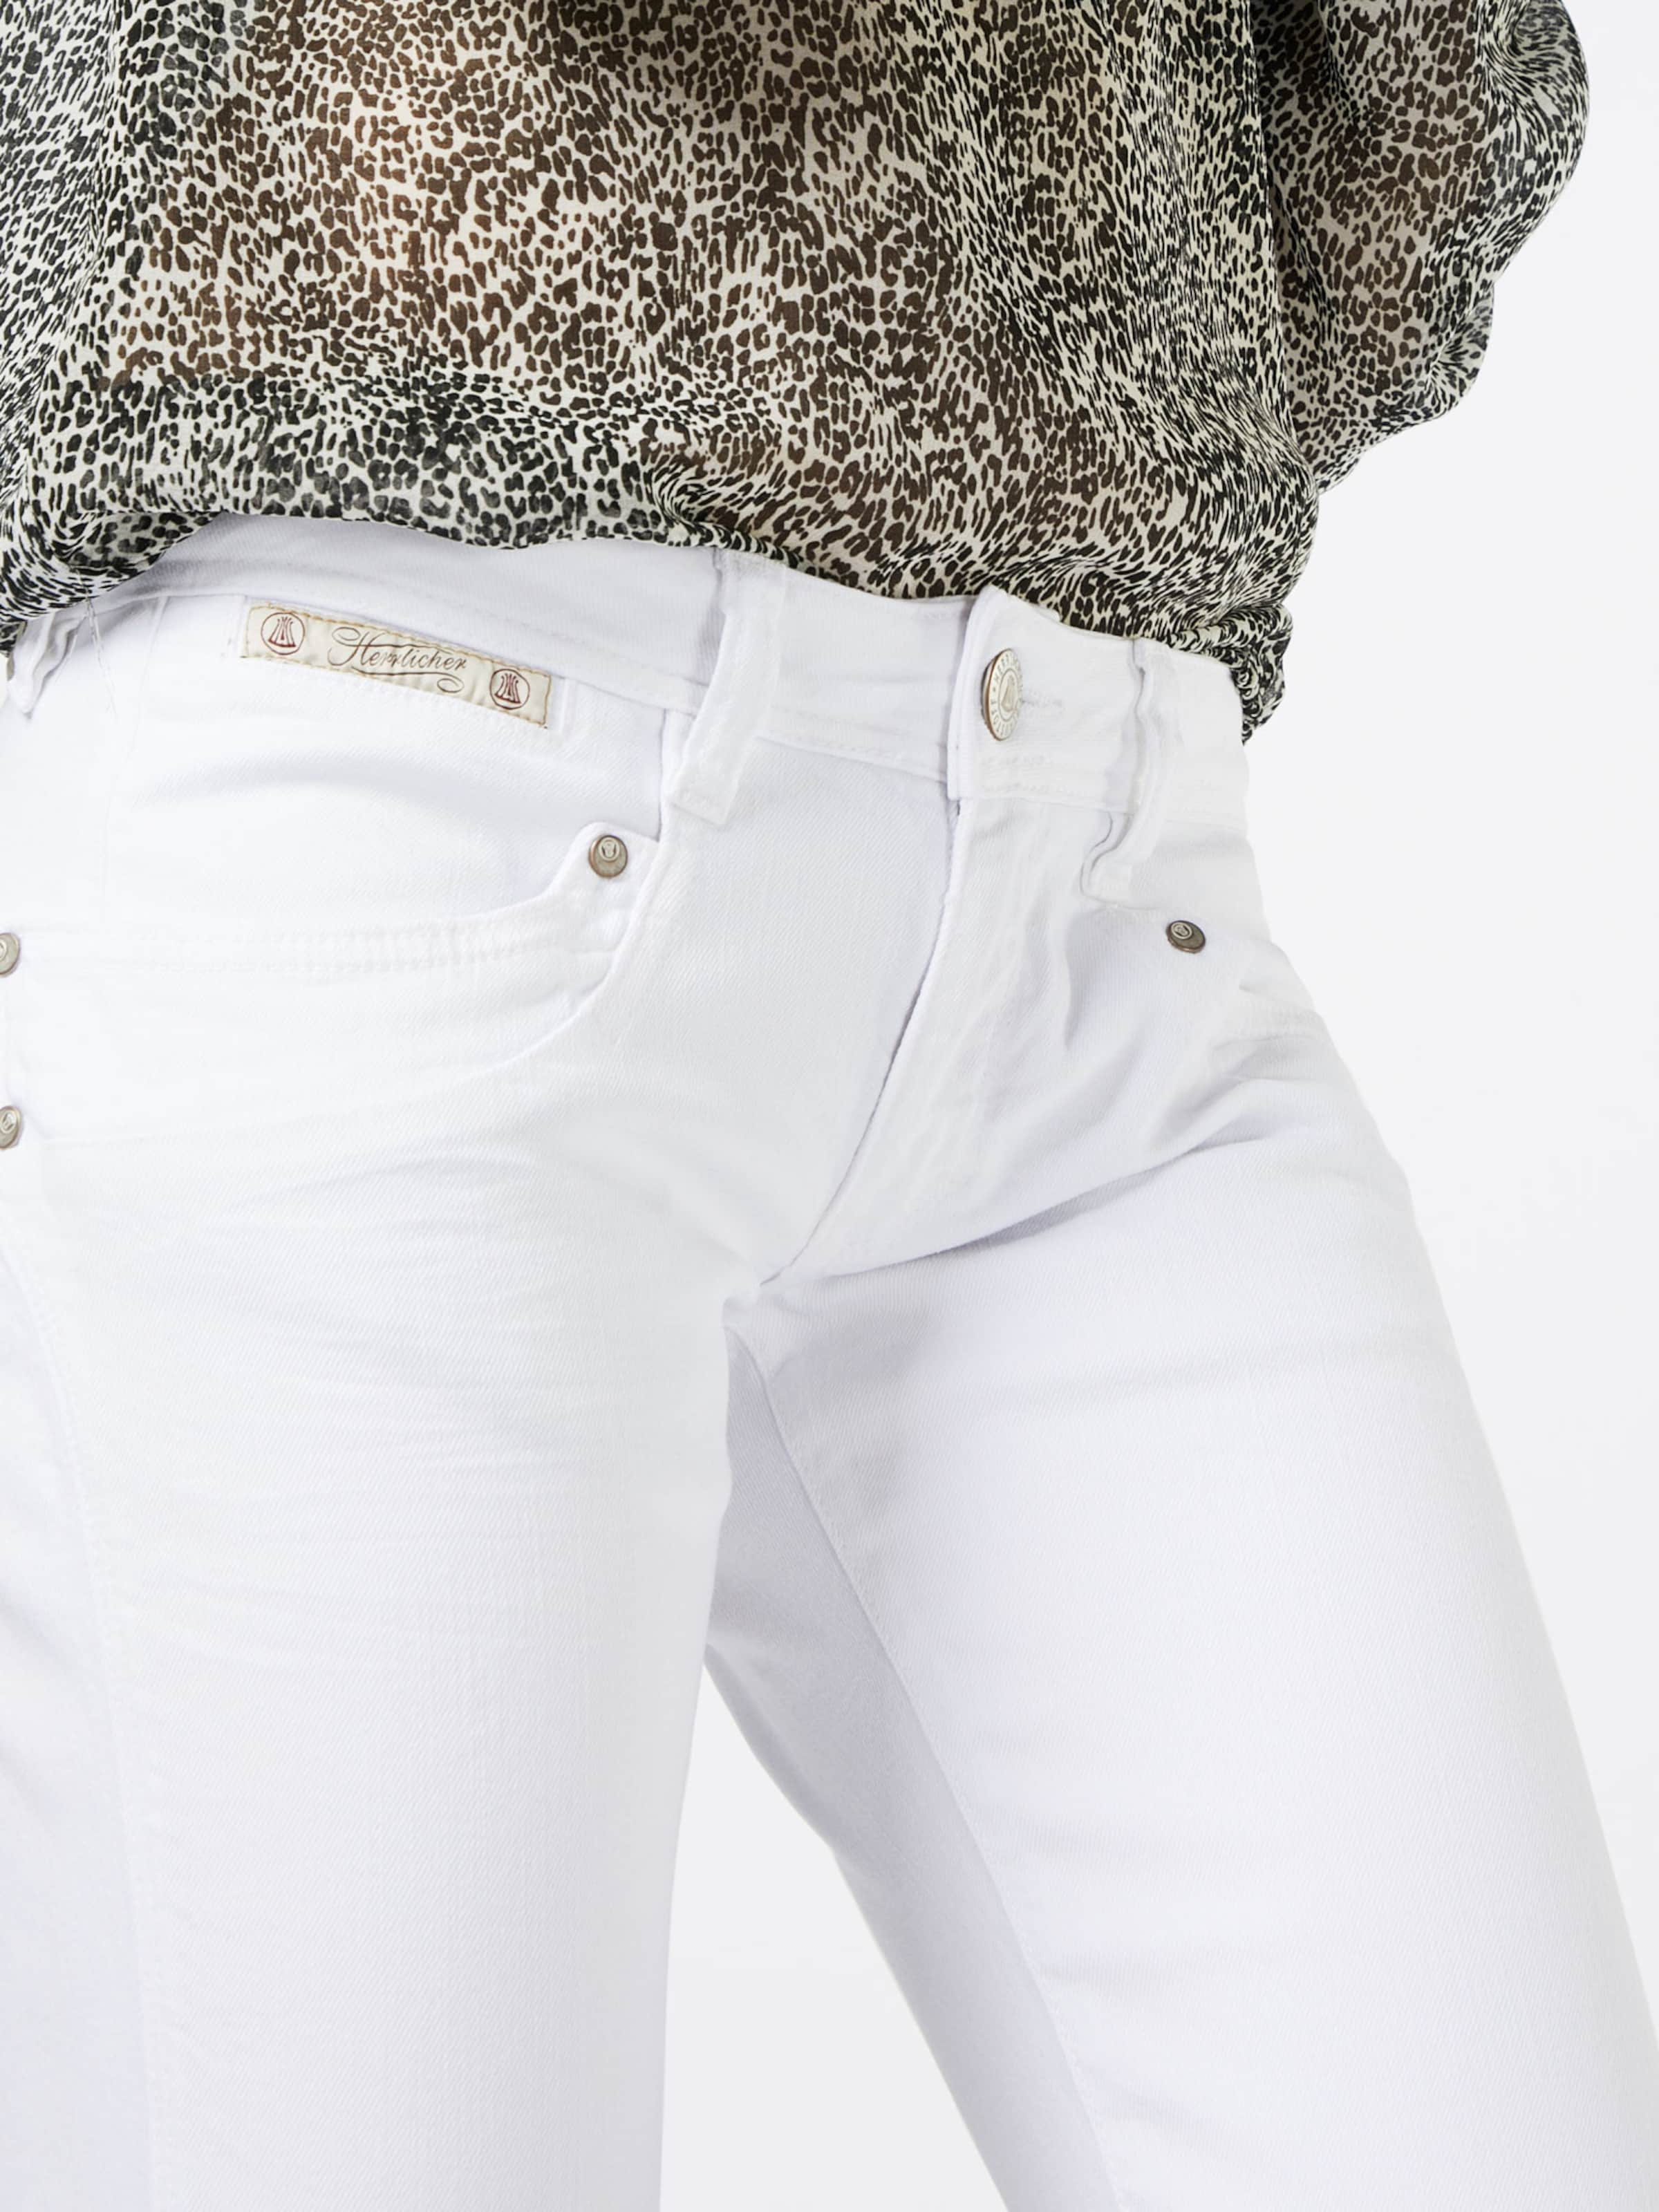 White Herrlicher In Jeans Denim Slim' 'piper 6ybf7g